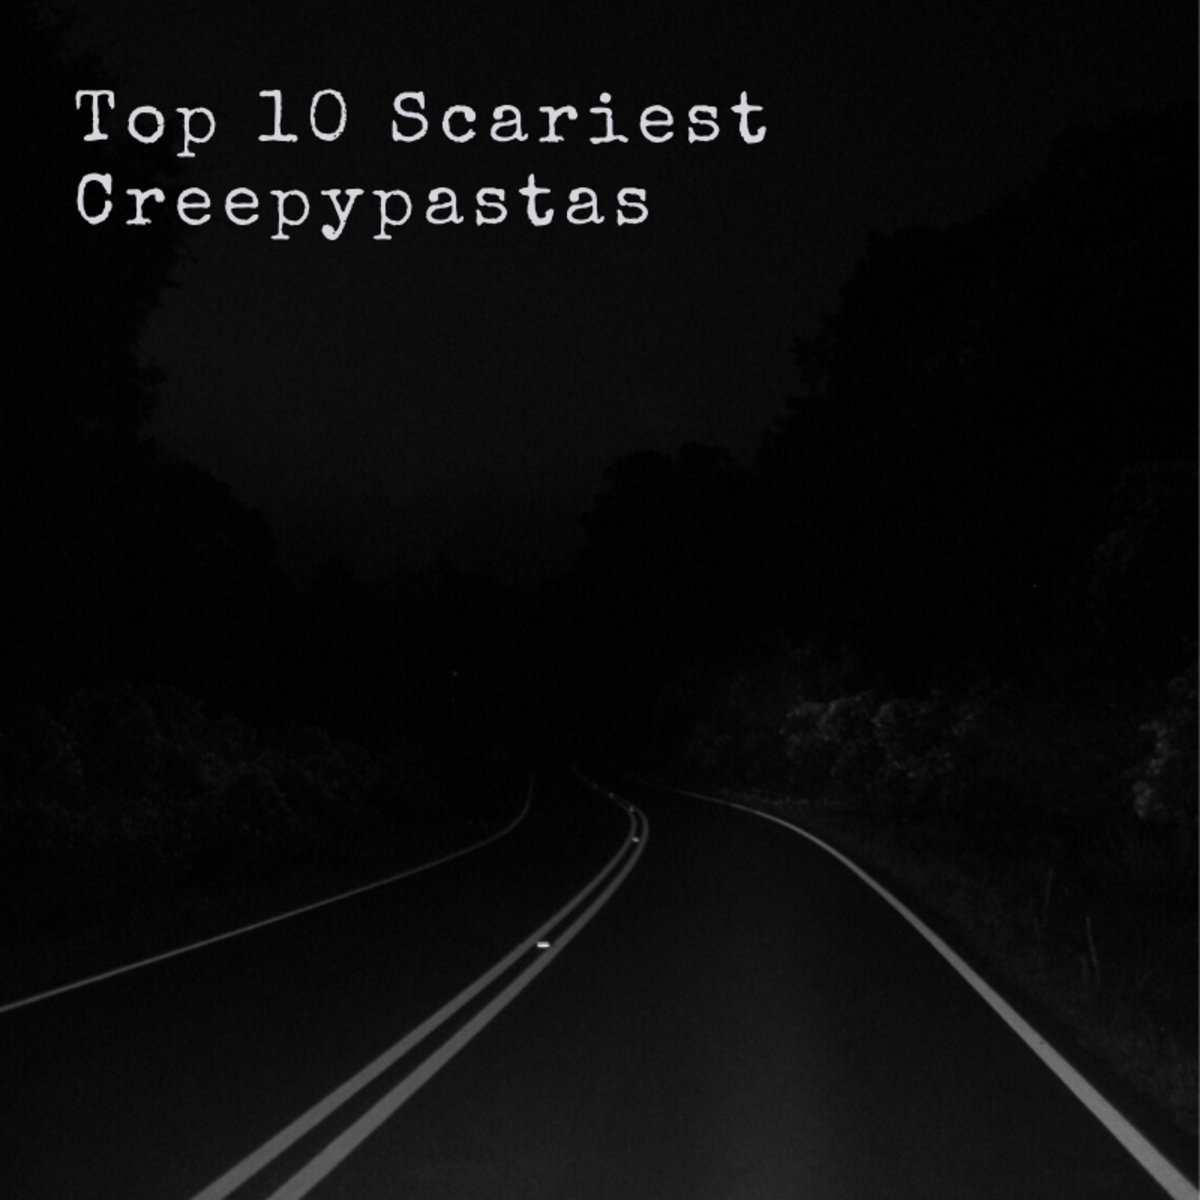 This list will compile 10 of the scariest creepypastas ever written—and it won't ruin any of them with annoying spoilers!